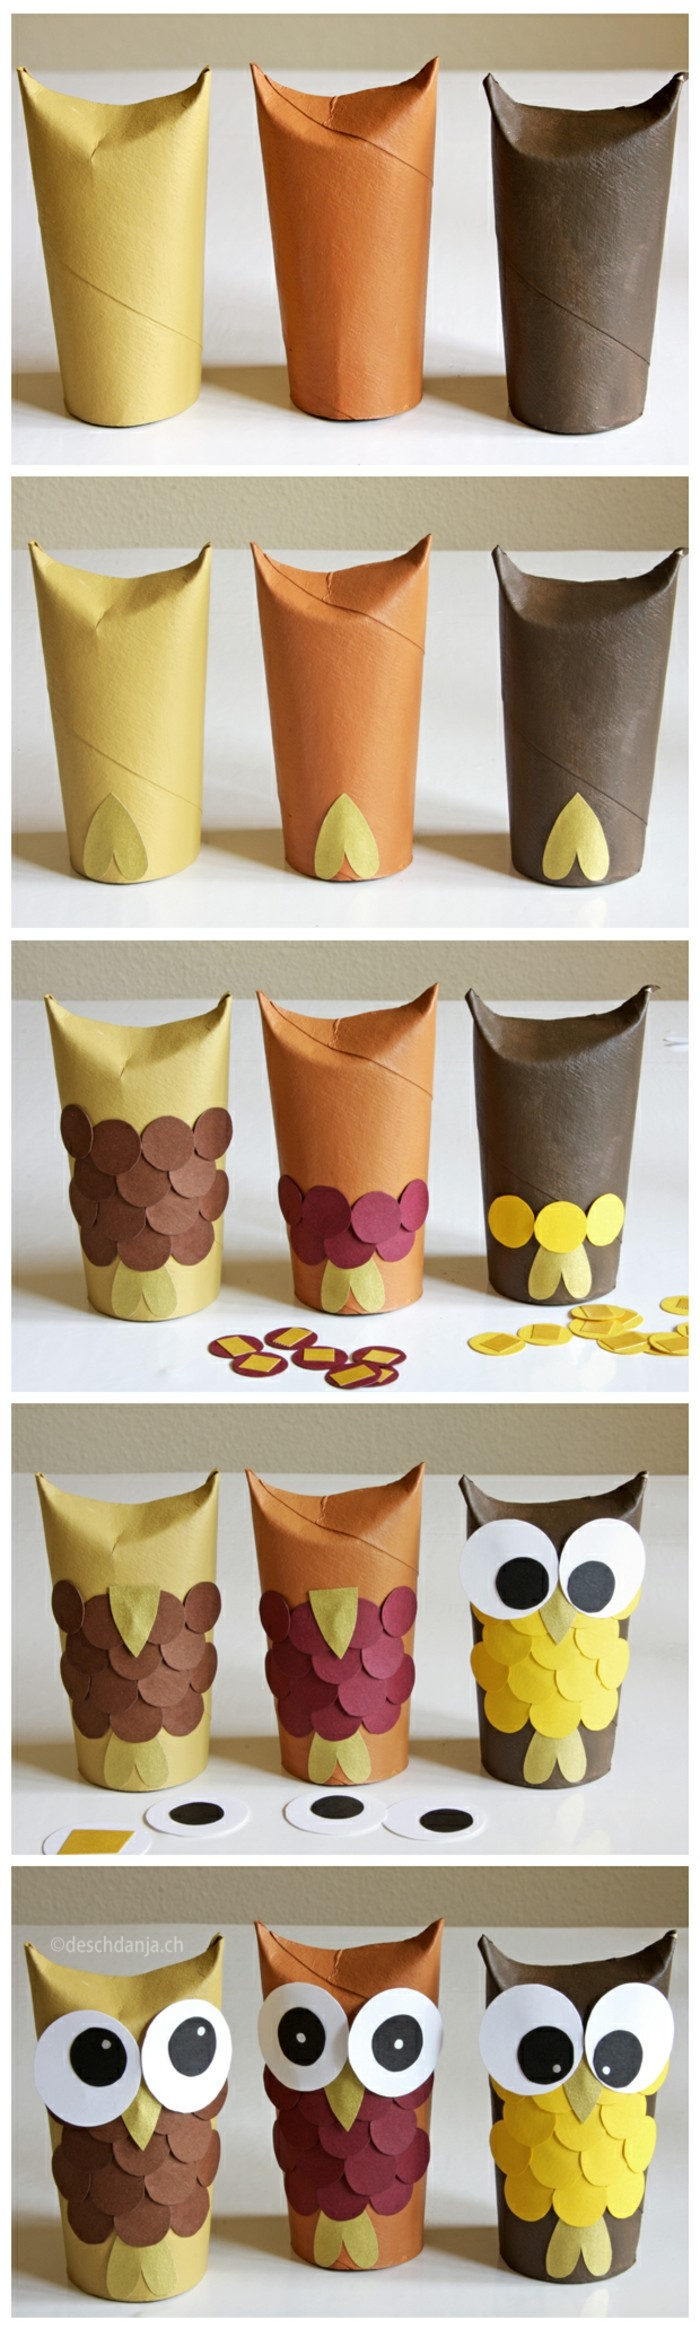 making autumn with children making autumn decoration yourself tinkering with paper rolls